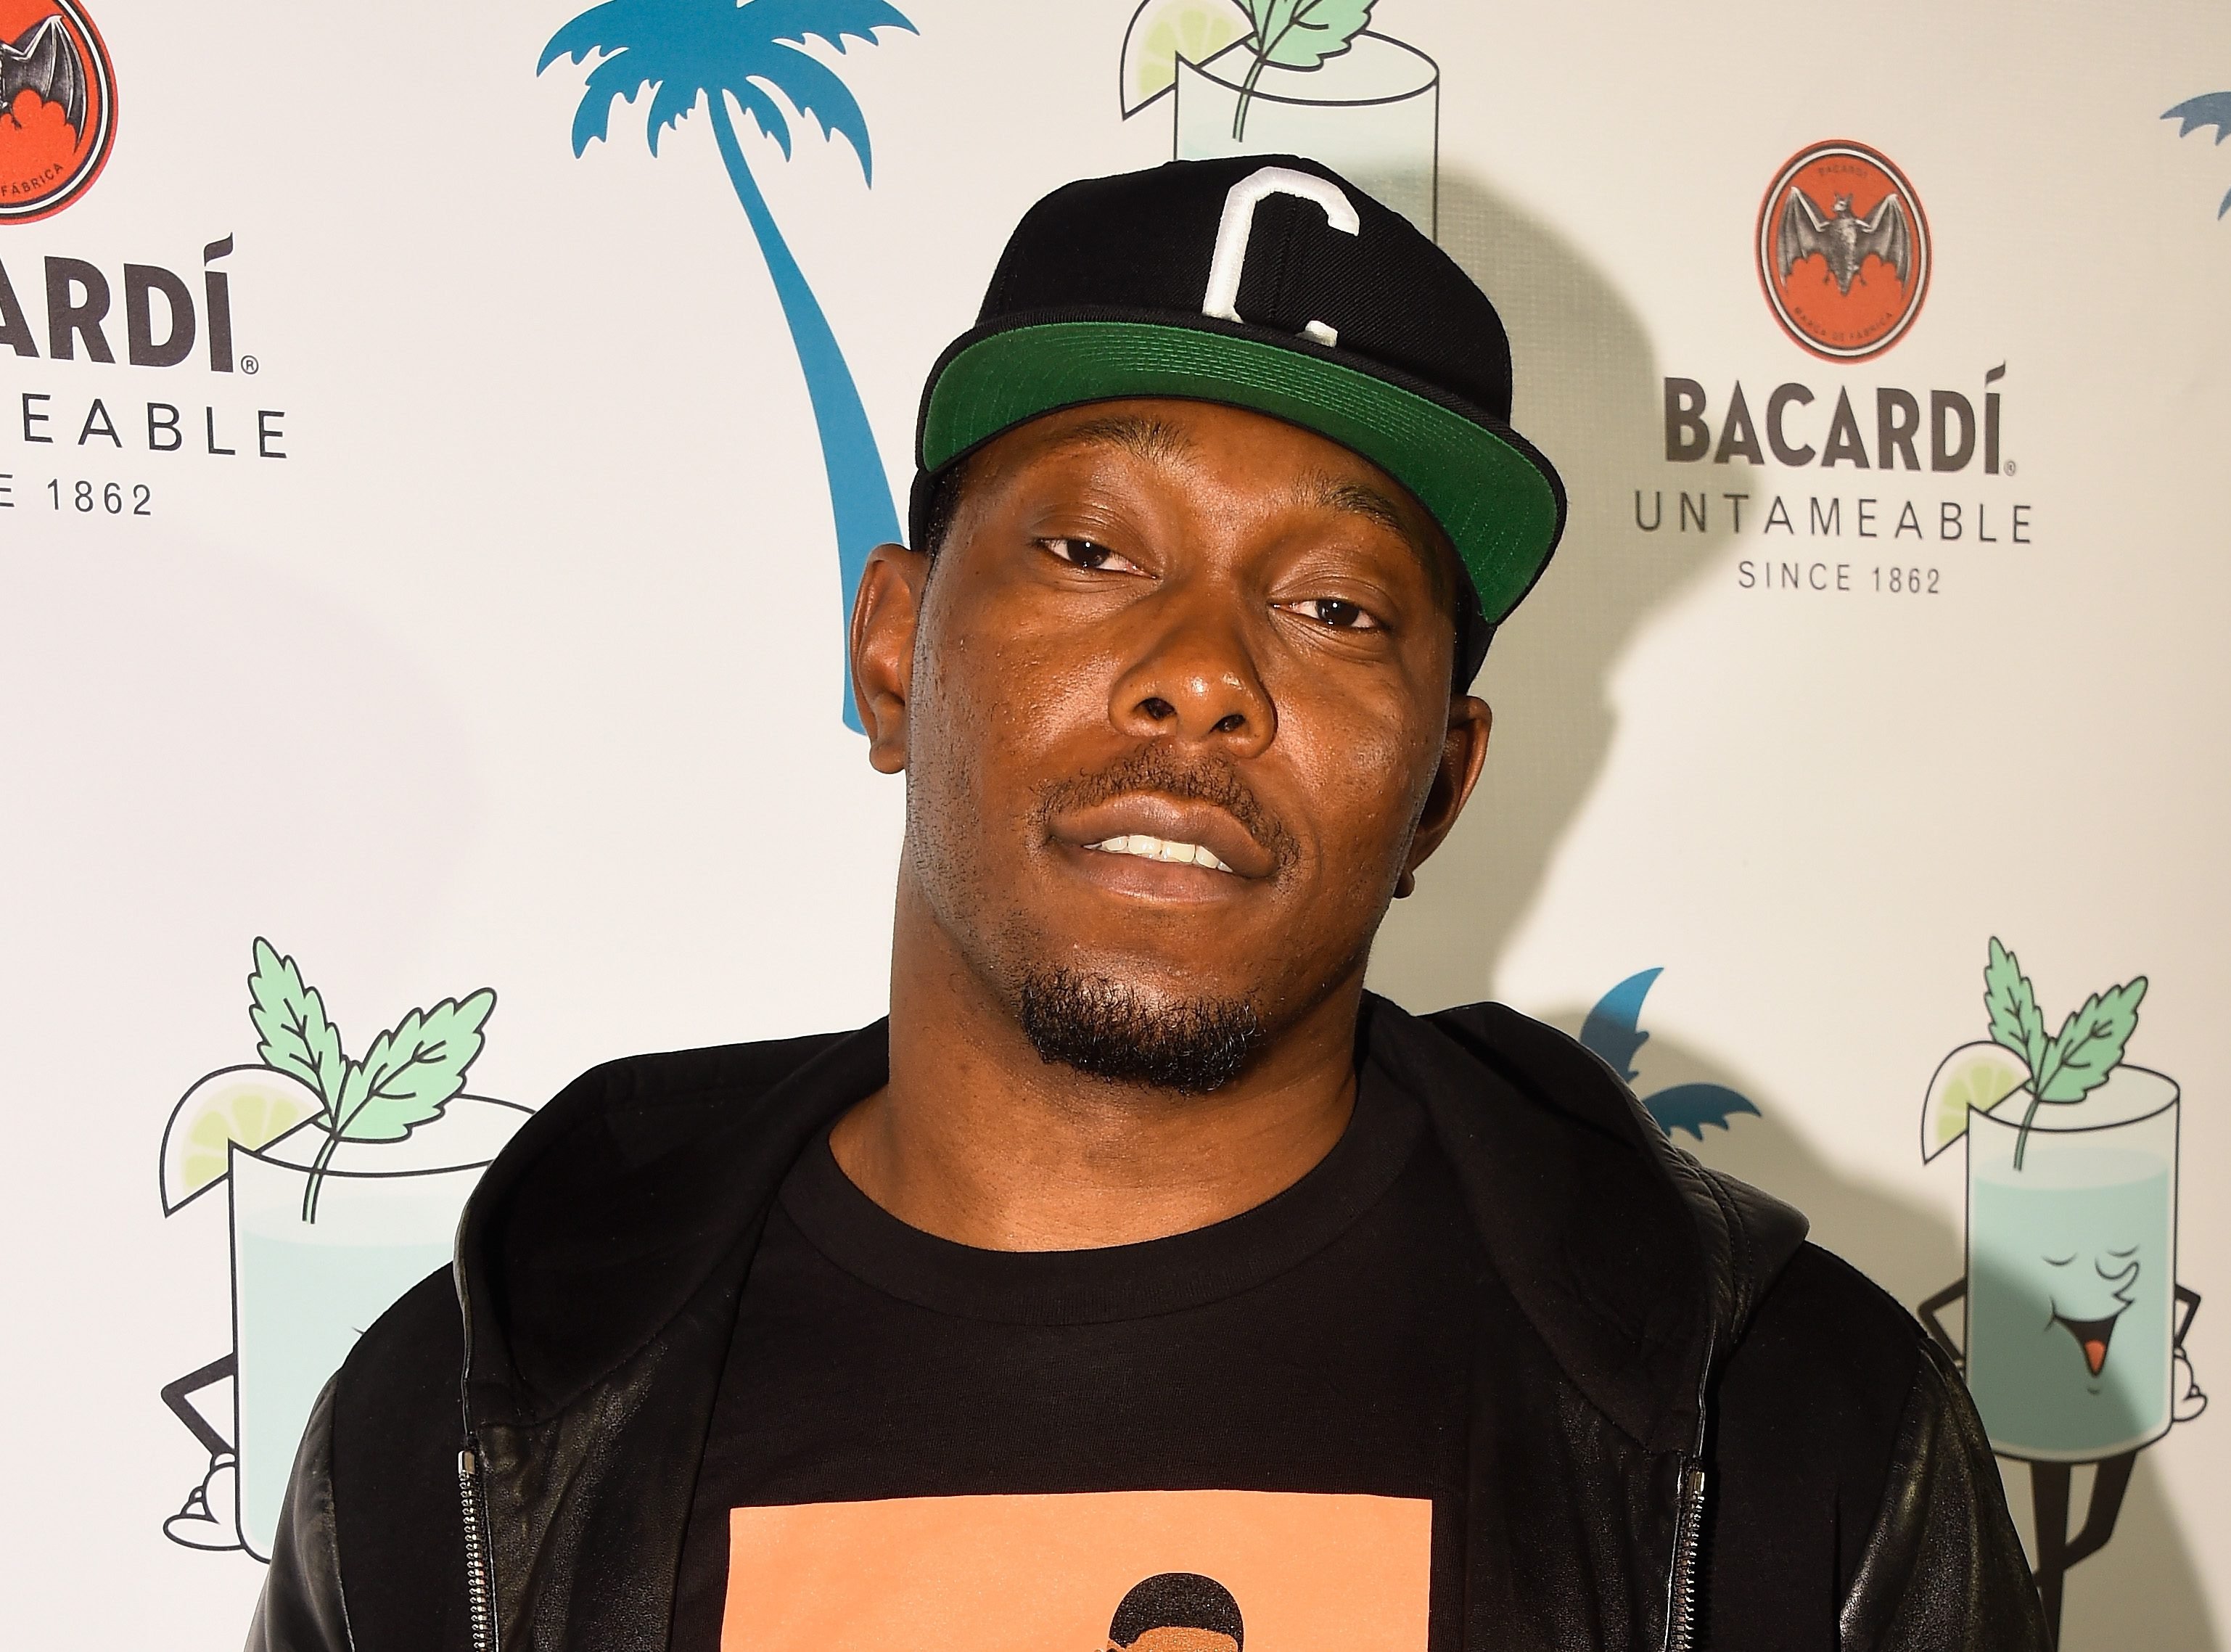 Dizzee Rascal is set to play Boy In Da Corner for the first time (Picture: Getty Images)